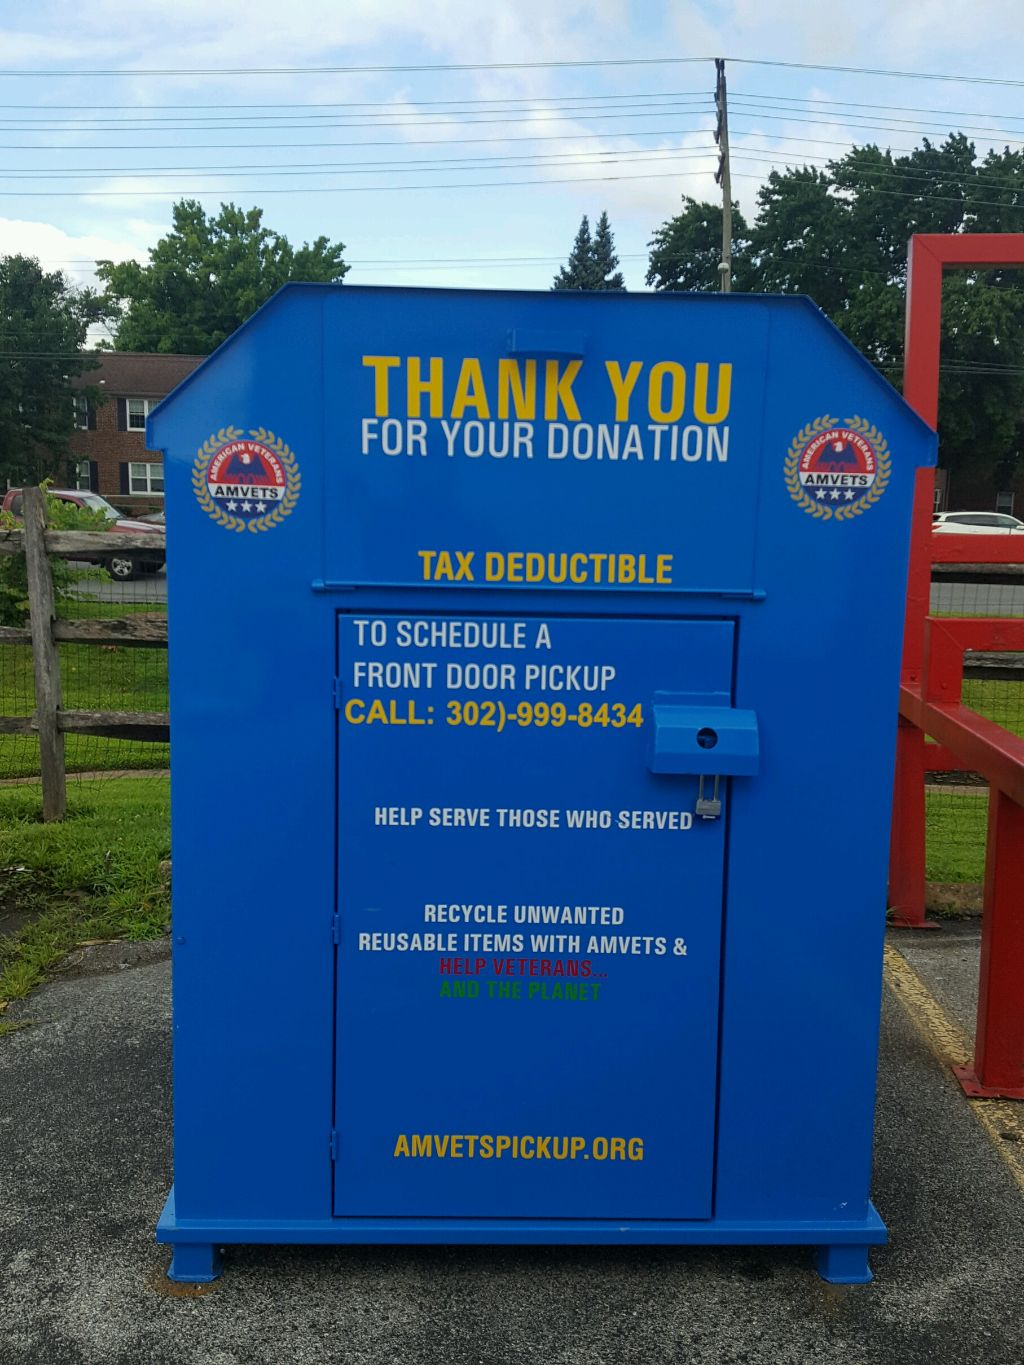 AMVETS Thrift Store and Drop Boxes locations here